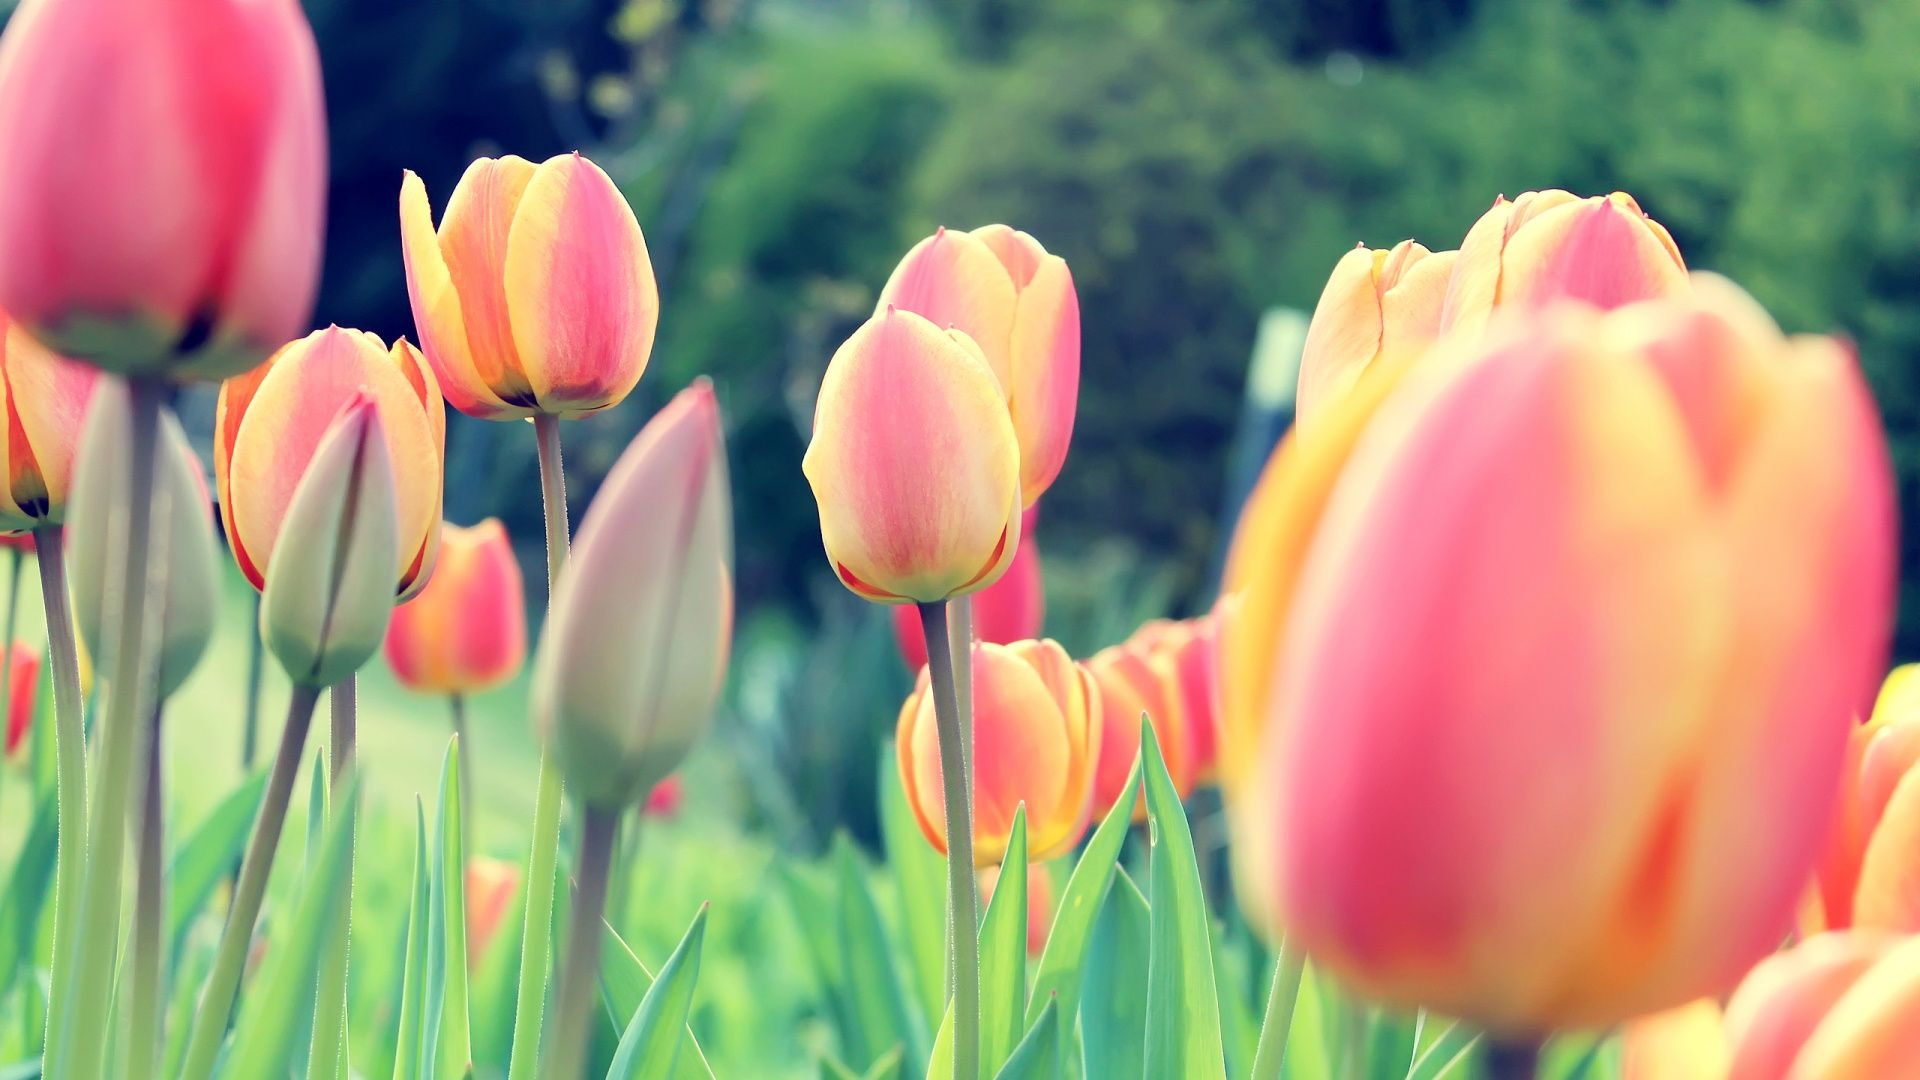 tulip flowers images hd